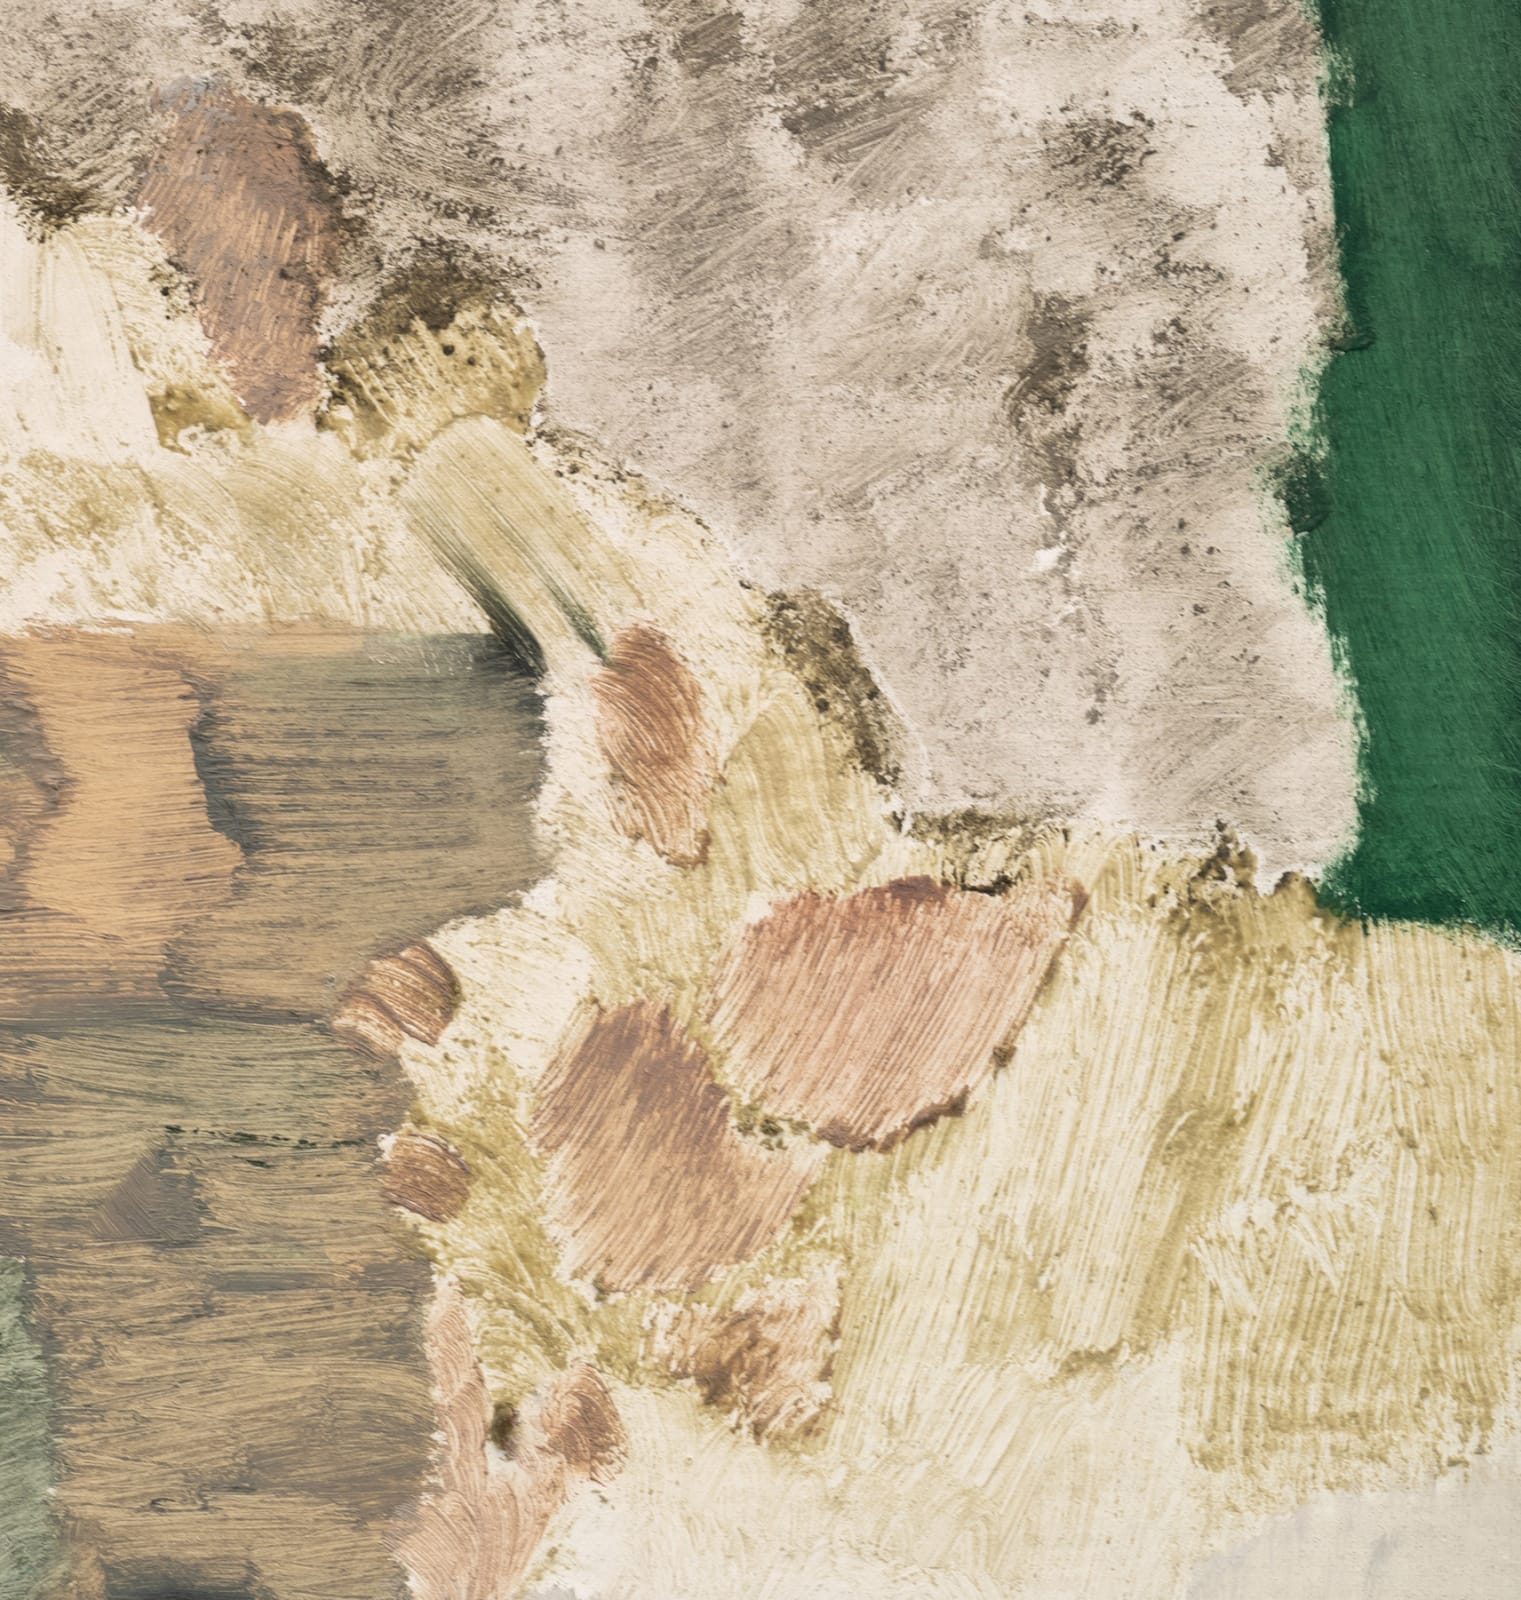 "<p>Andreas Eriksson, <em>Bräckt</em>, 2019. Detail.</p><h3>""Territories of the finished tapestries might be distinguished by a particular knotted texture or the stands of long fibre sprouting from the surface. Andreas has described the tapestries as 'existential landscapes'. We might also see them as a conceptual extension of painting in which the picture migrates to the canvas itself."" </h3><p><strong>- Hettie Judah on Andreas Eriksson, 2020</strong></p>"